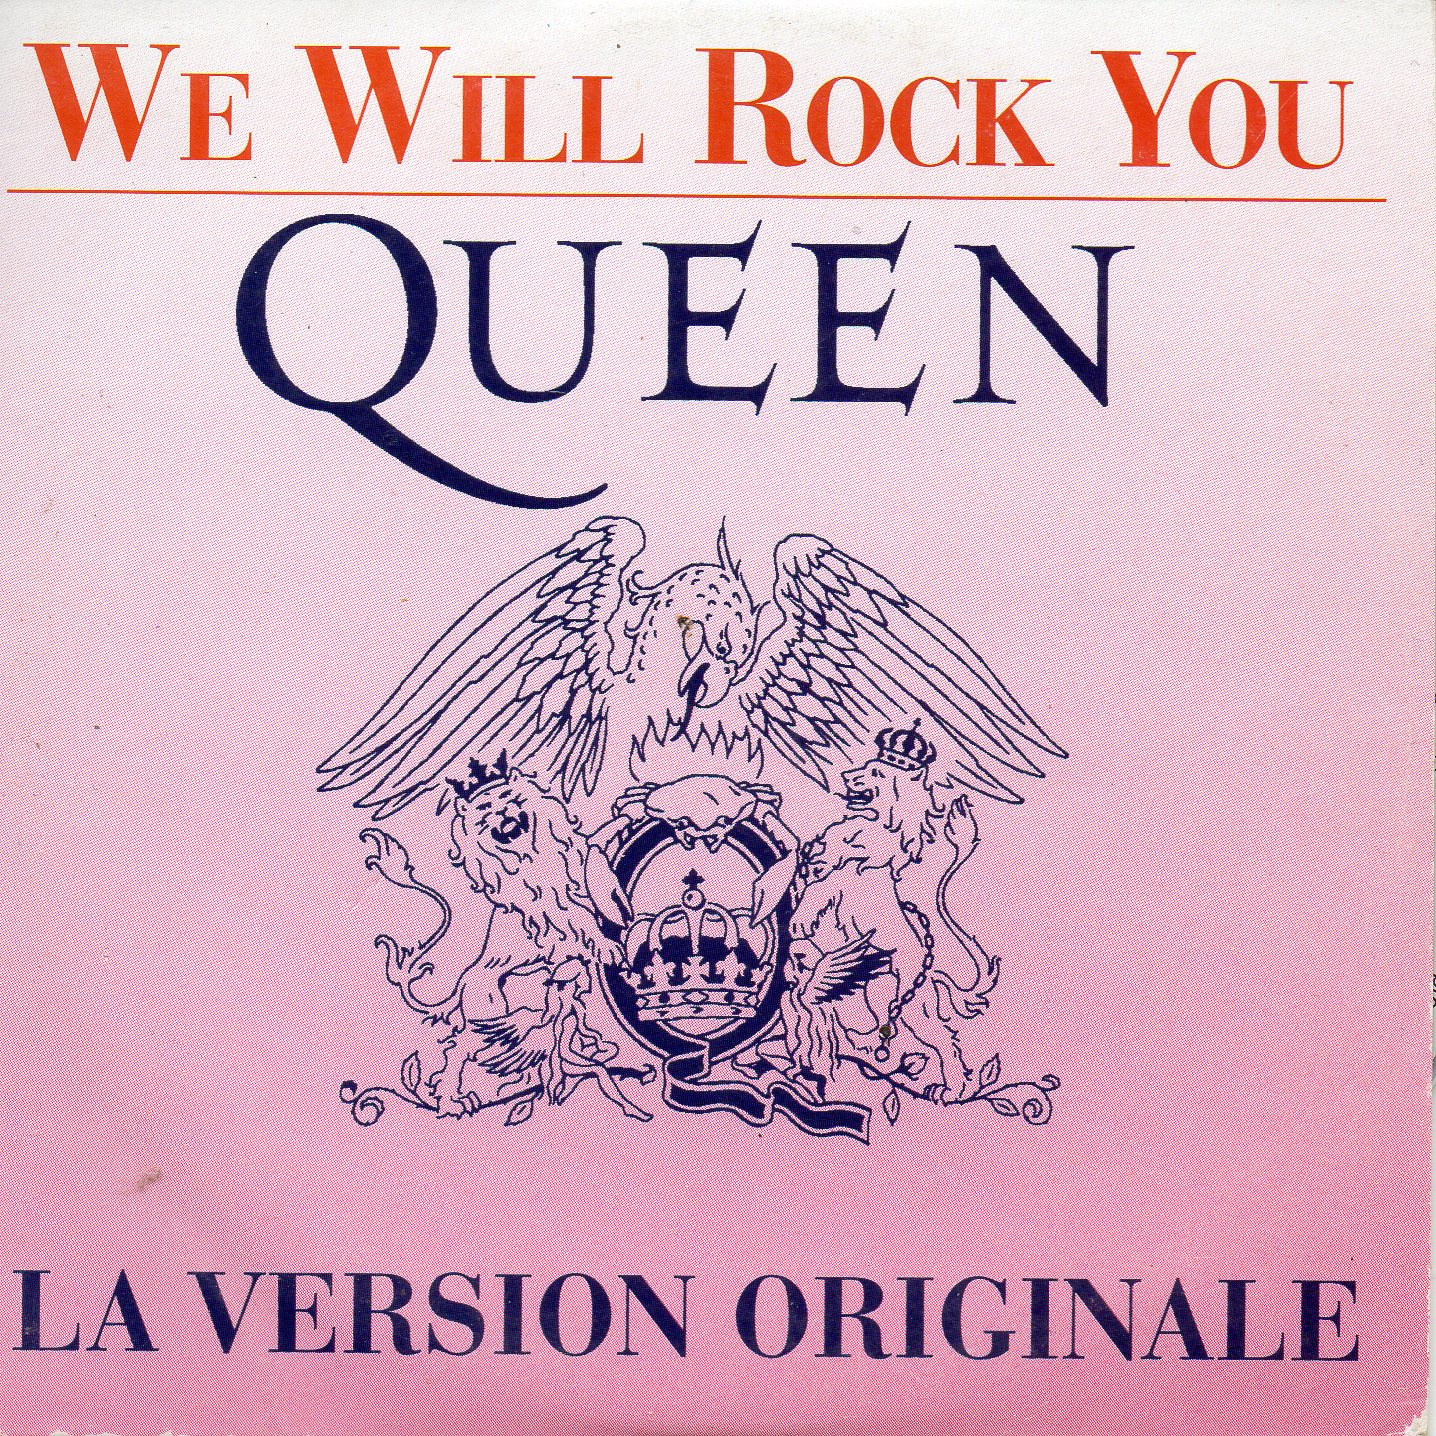 Some of the images that we found for within the public domain for your queen greatest hits we will rock you